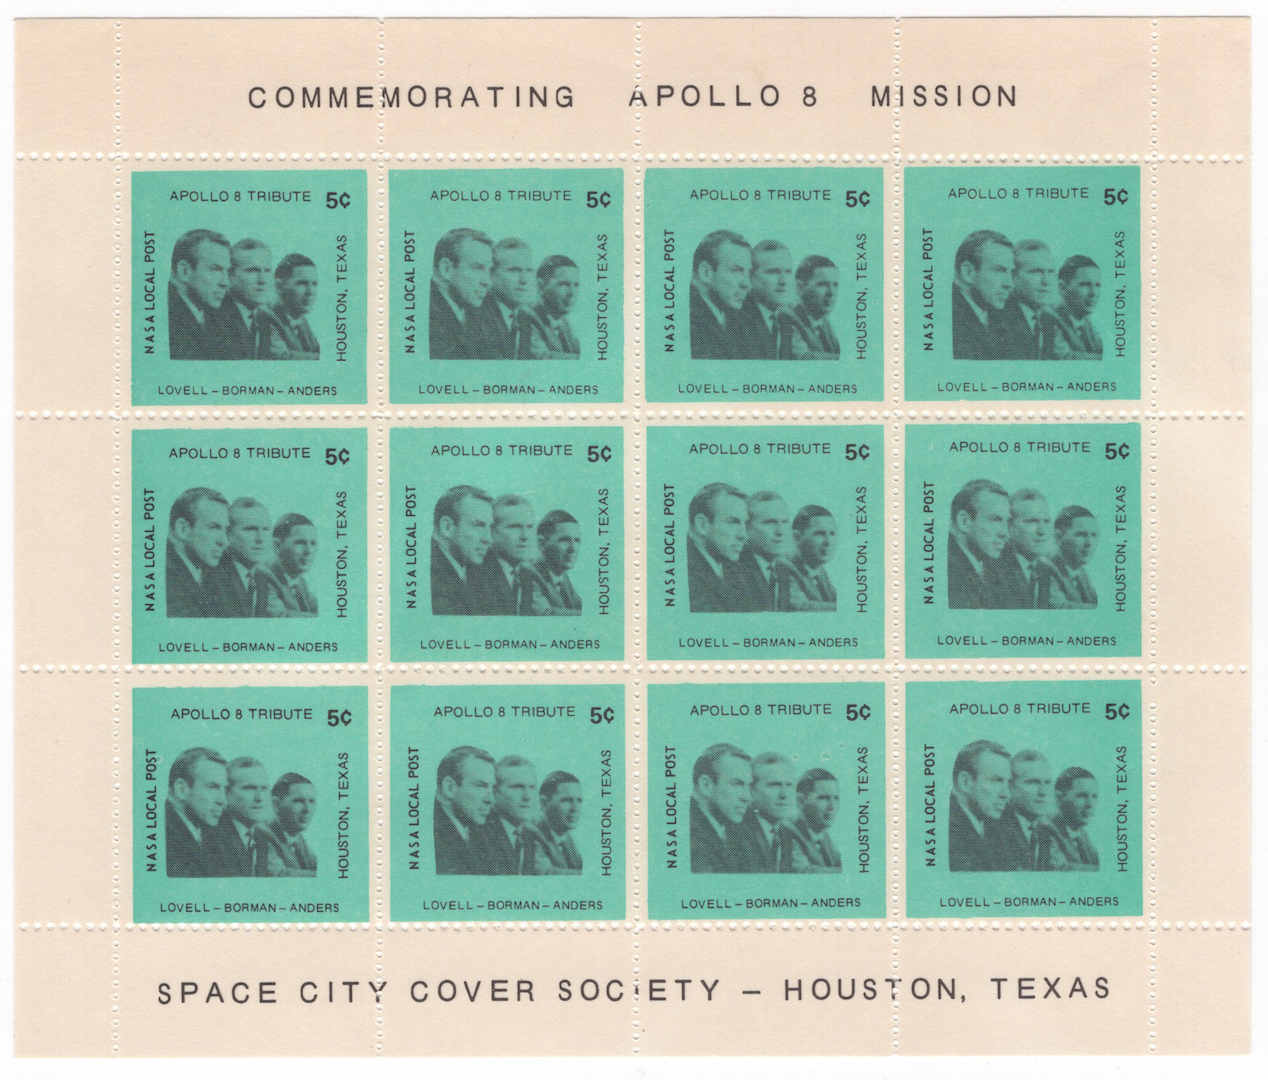 ERM-XXXX-STAMPS-SPACE_CITY_COVER_SOCIETY.jpg